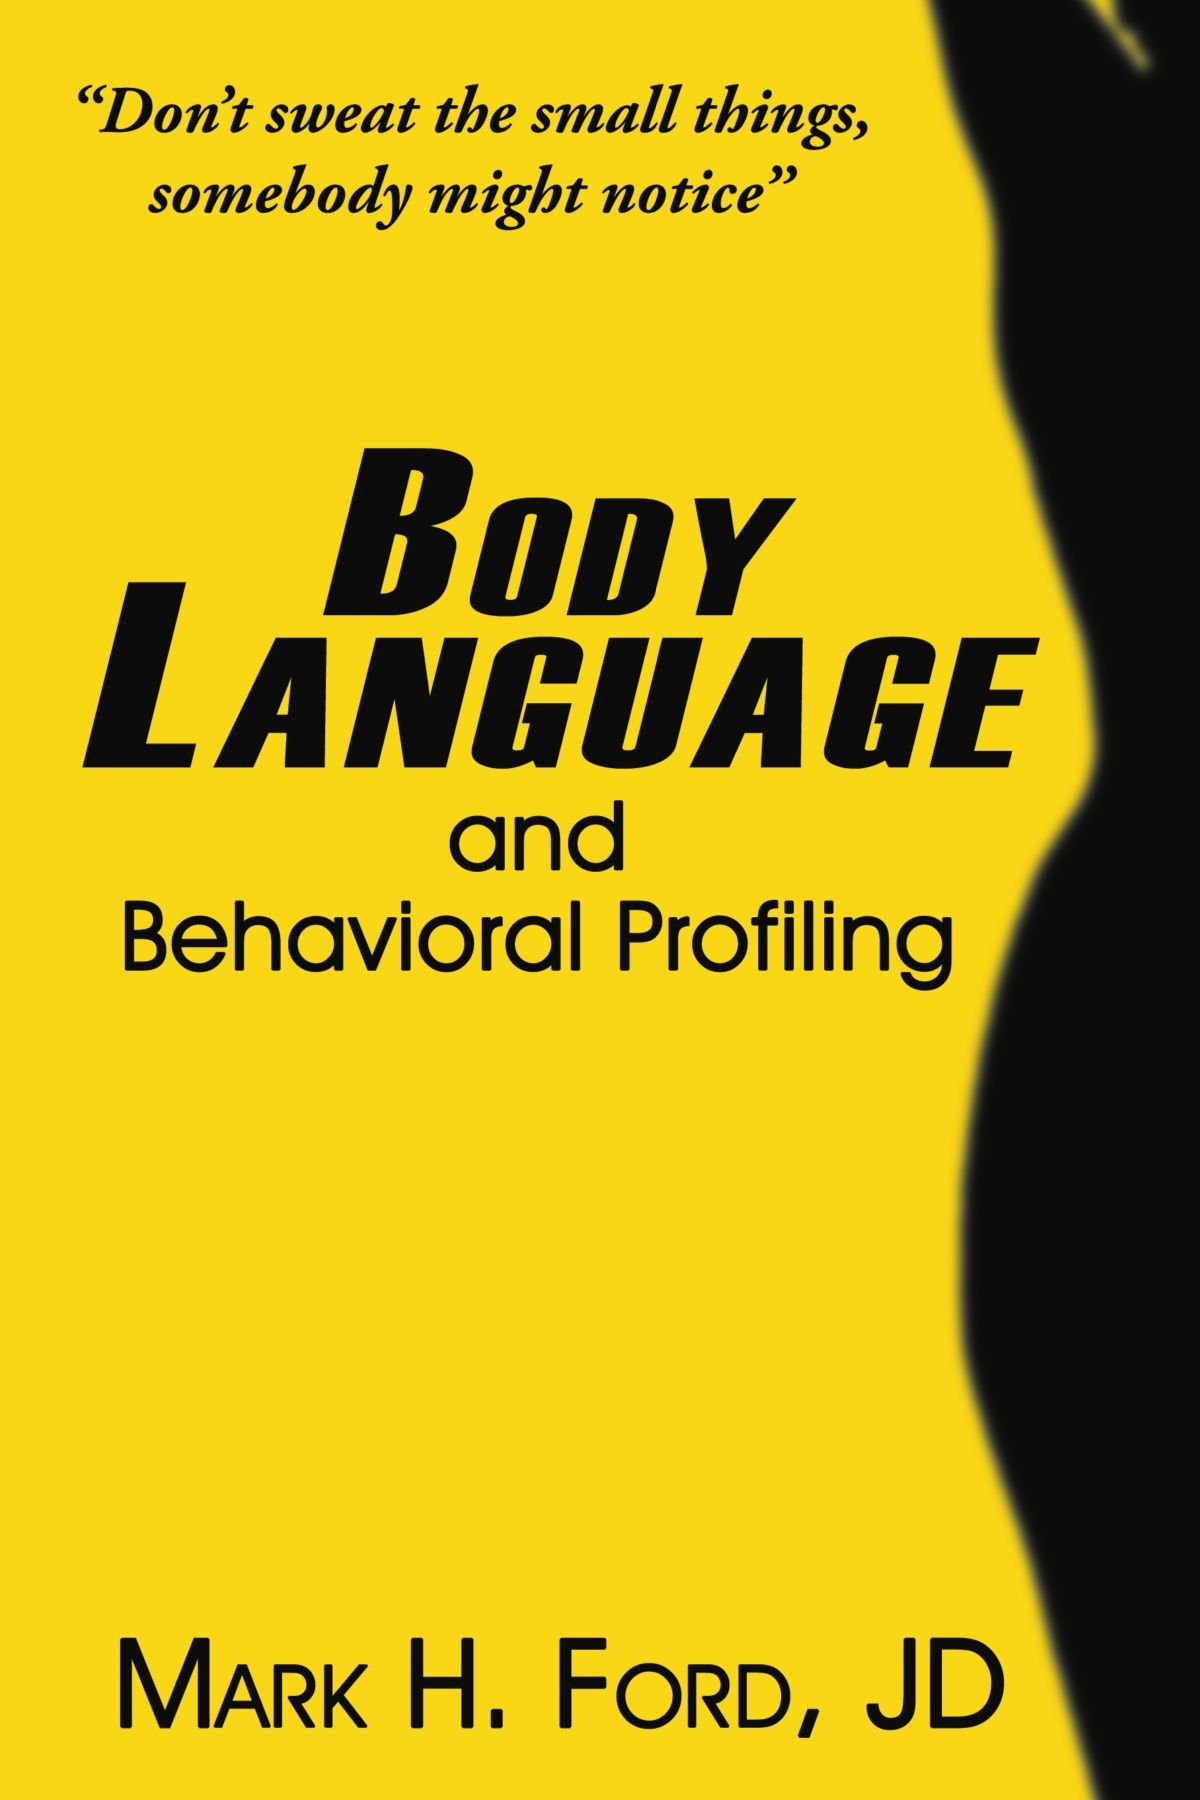 Body language and behavioral profiling